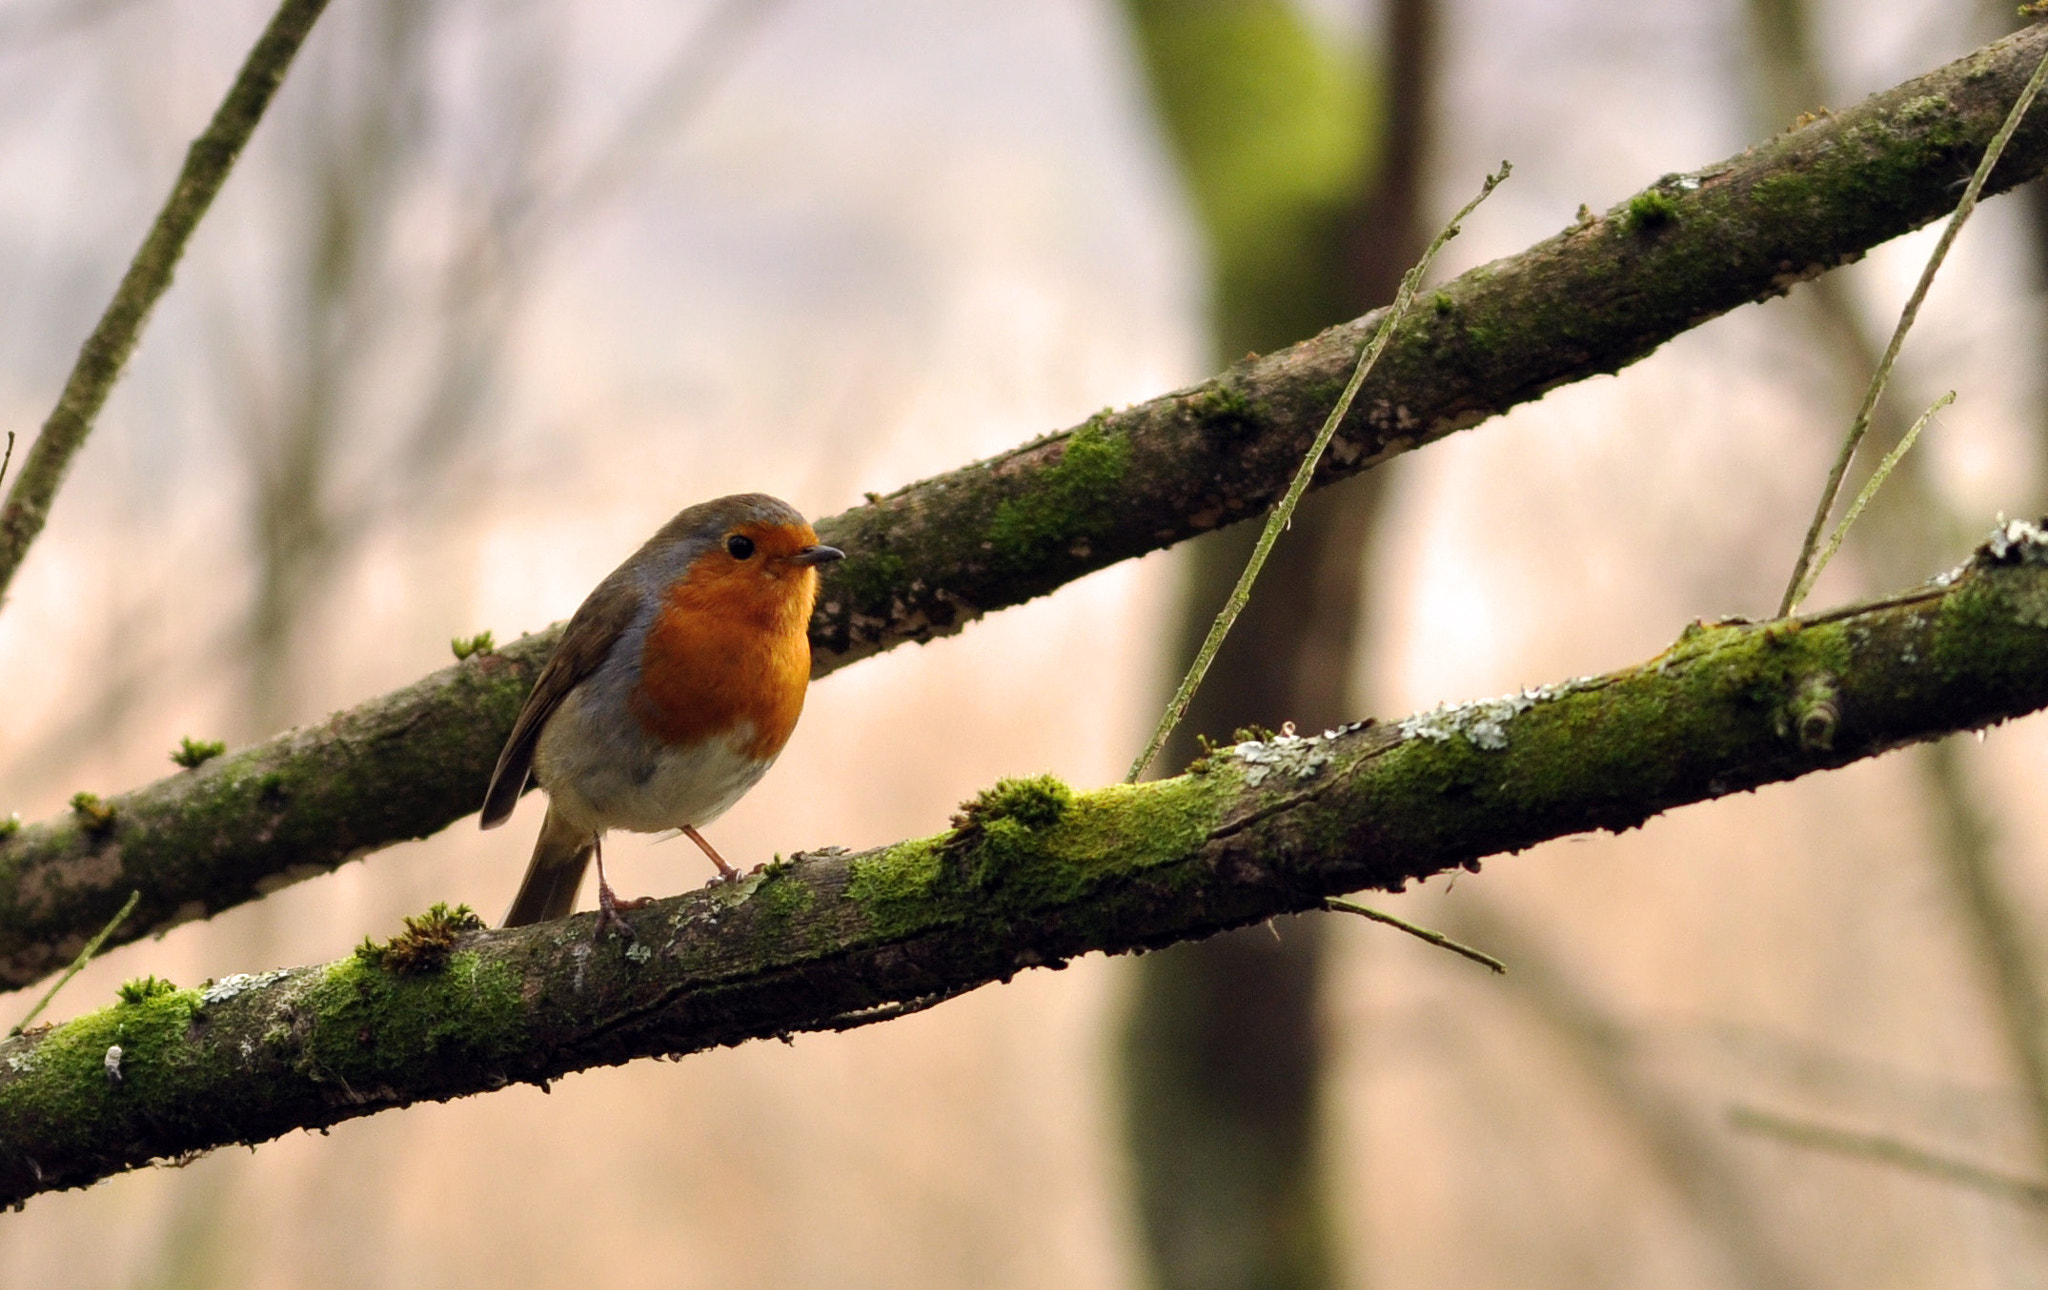 Photograph Branching out - Robin by Ciaran Kealy on 500px